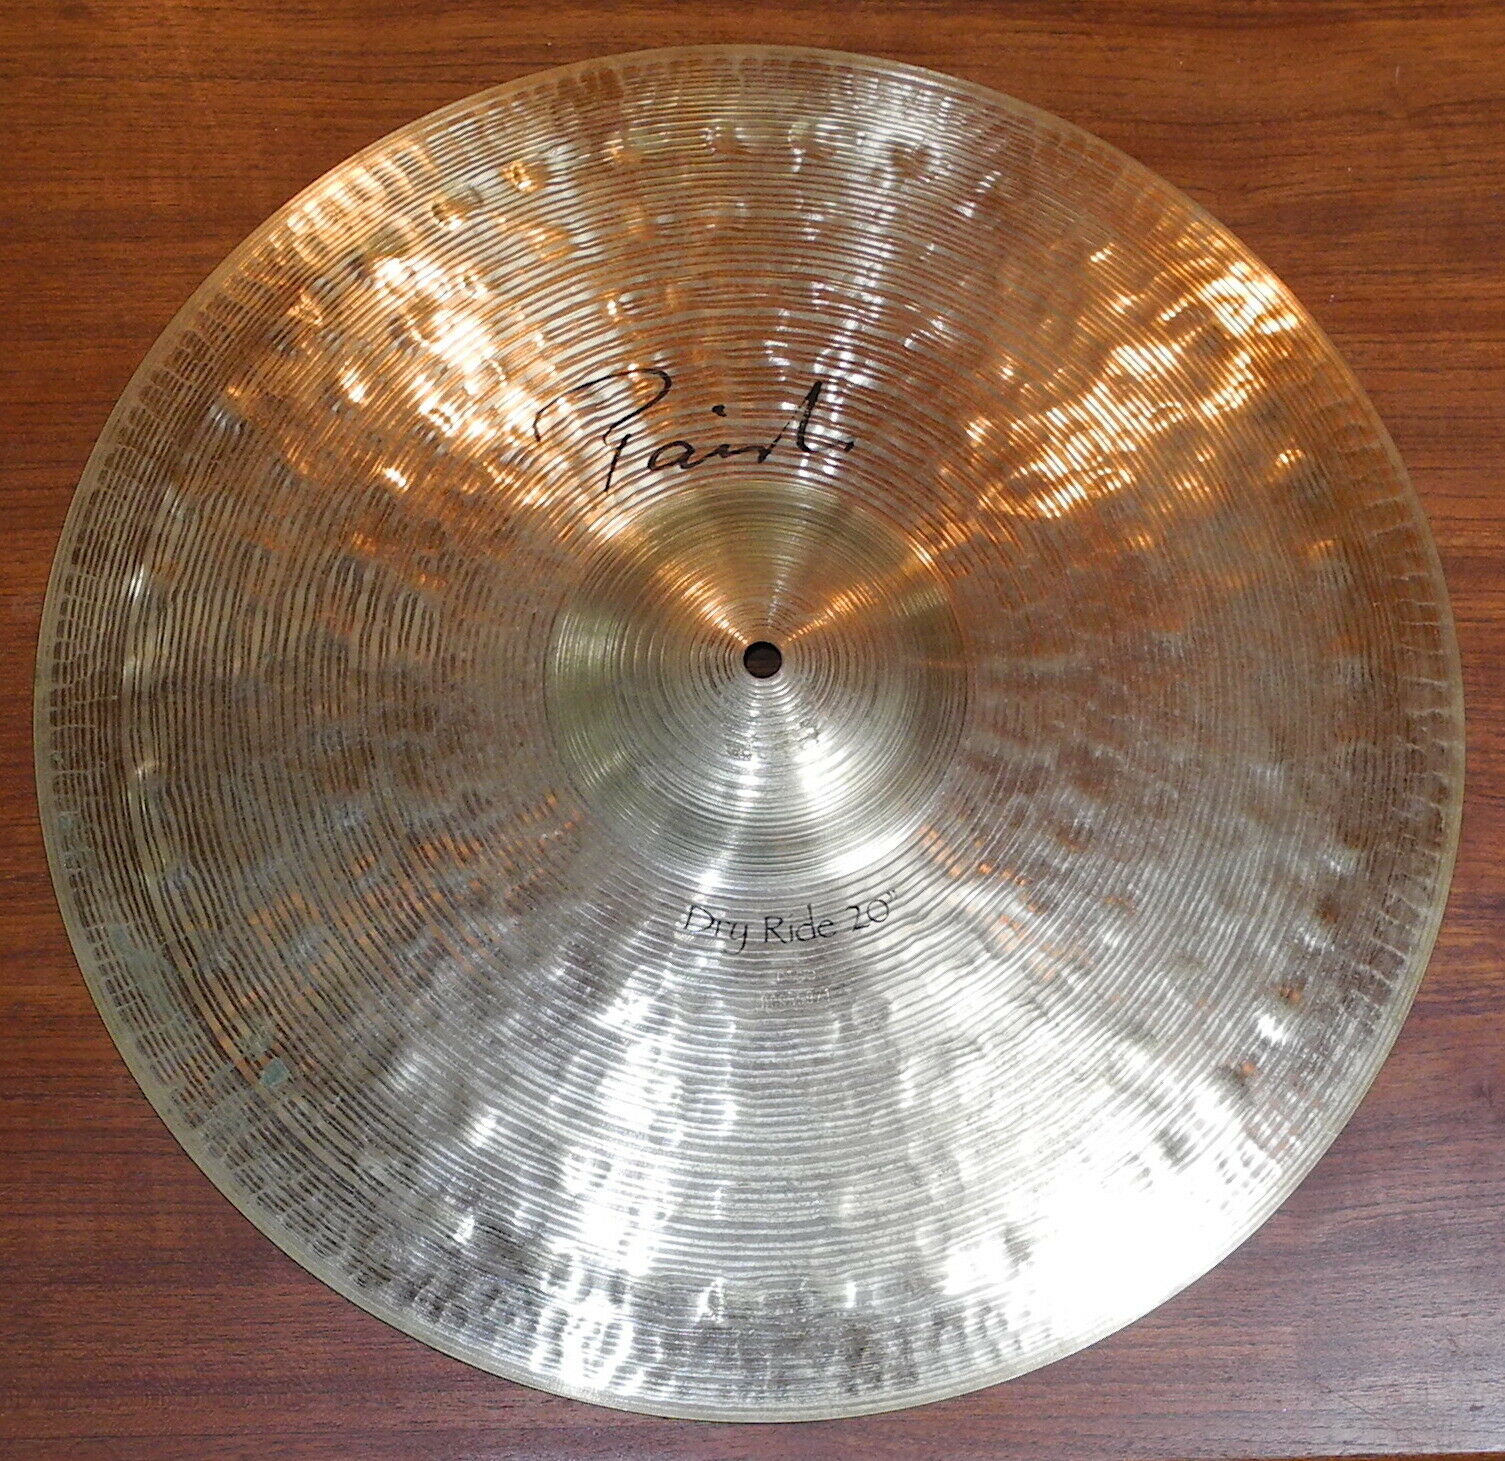 Paiste 20 Signature Dry Ride Cymbal Excellent  - $199.99